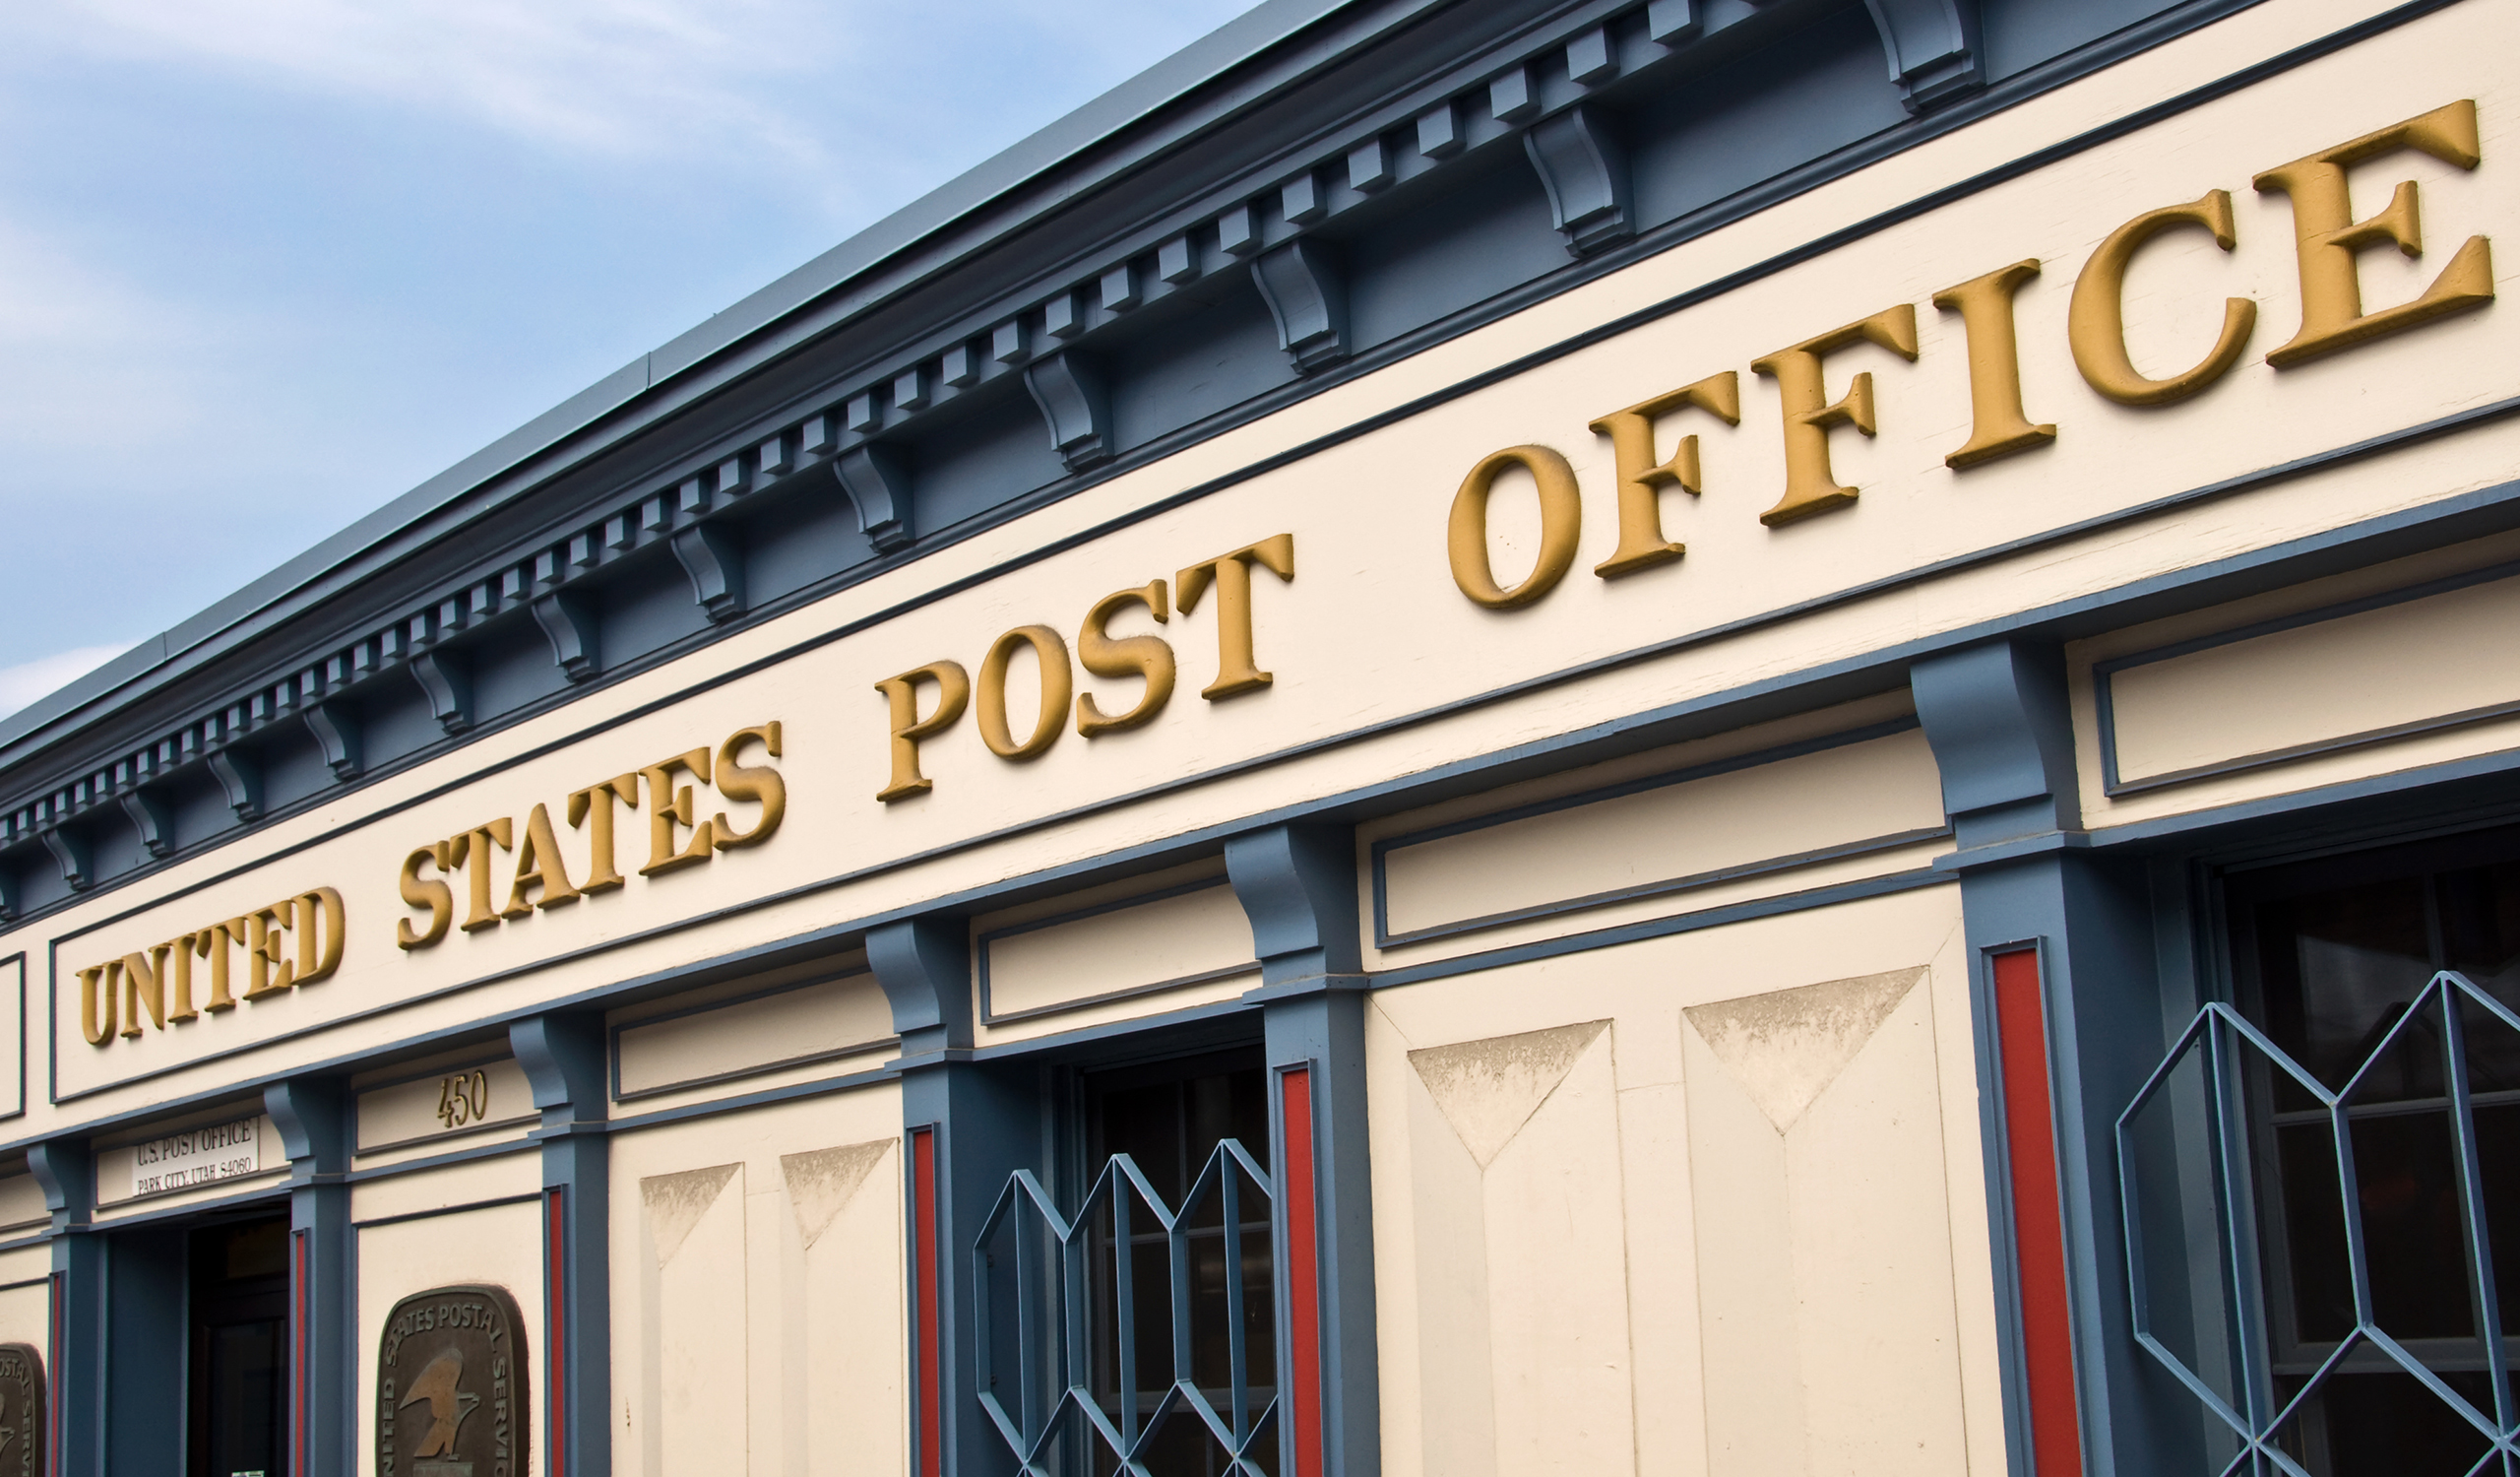 Implications of 2019 USPS Postal Rates for Direct Mailers